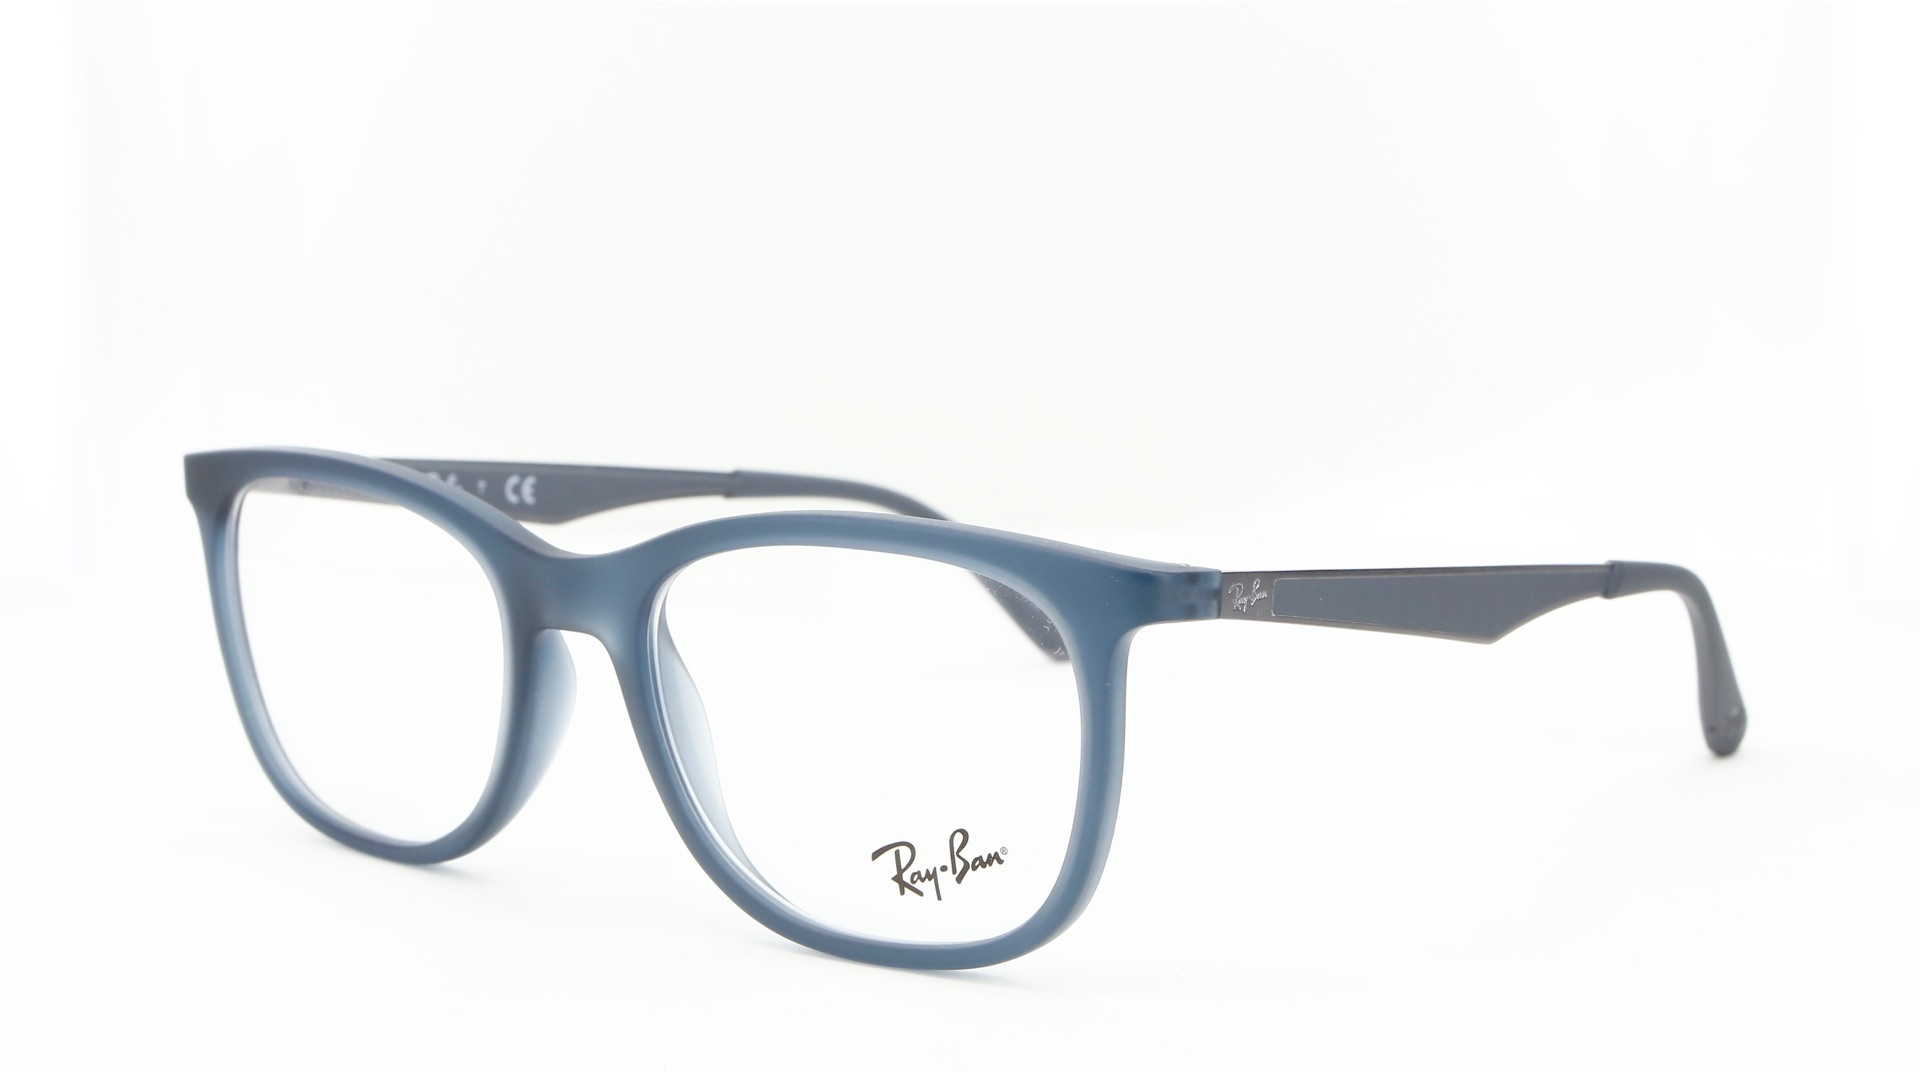 Ray-Ban - ref: 82431